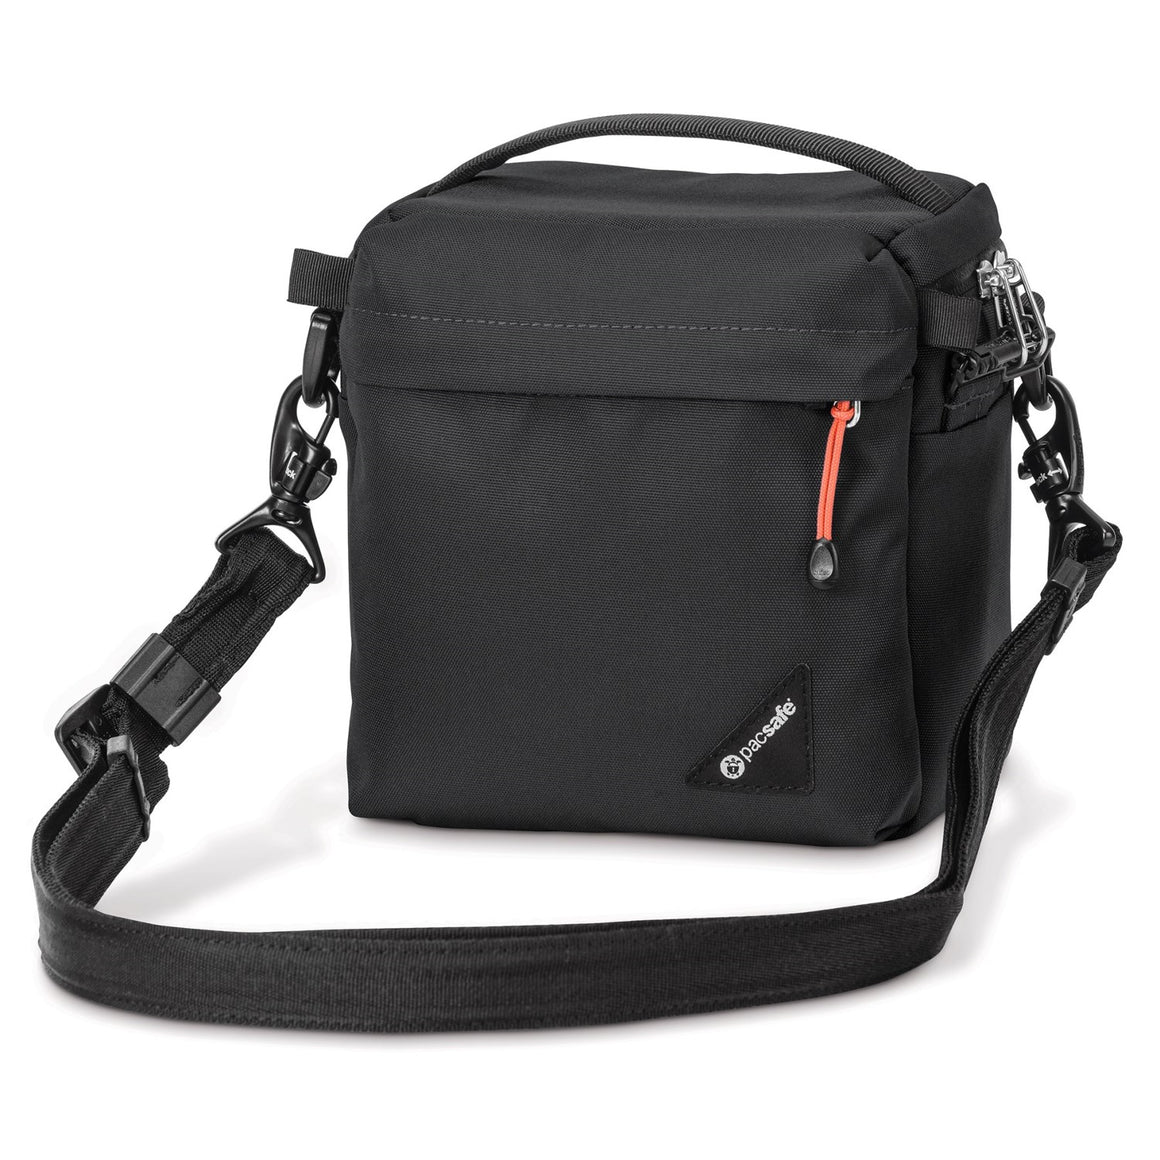 Pacsafe Camsafe LX3 Camera Bag Black